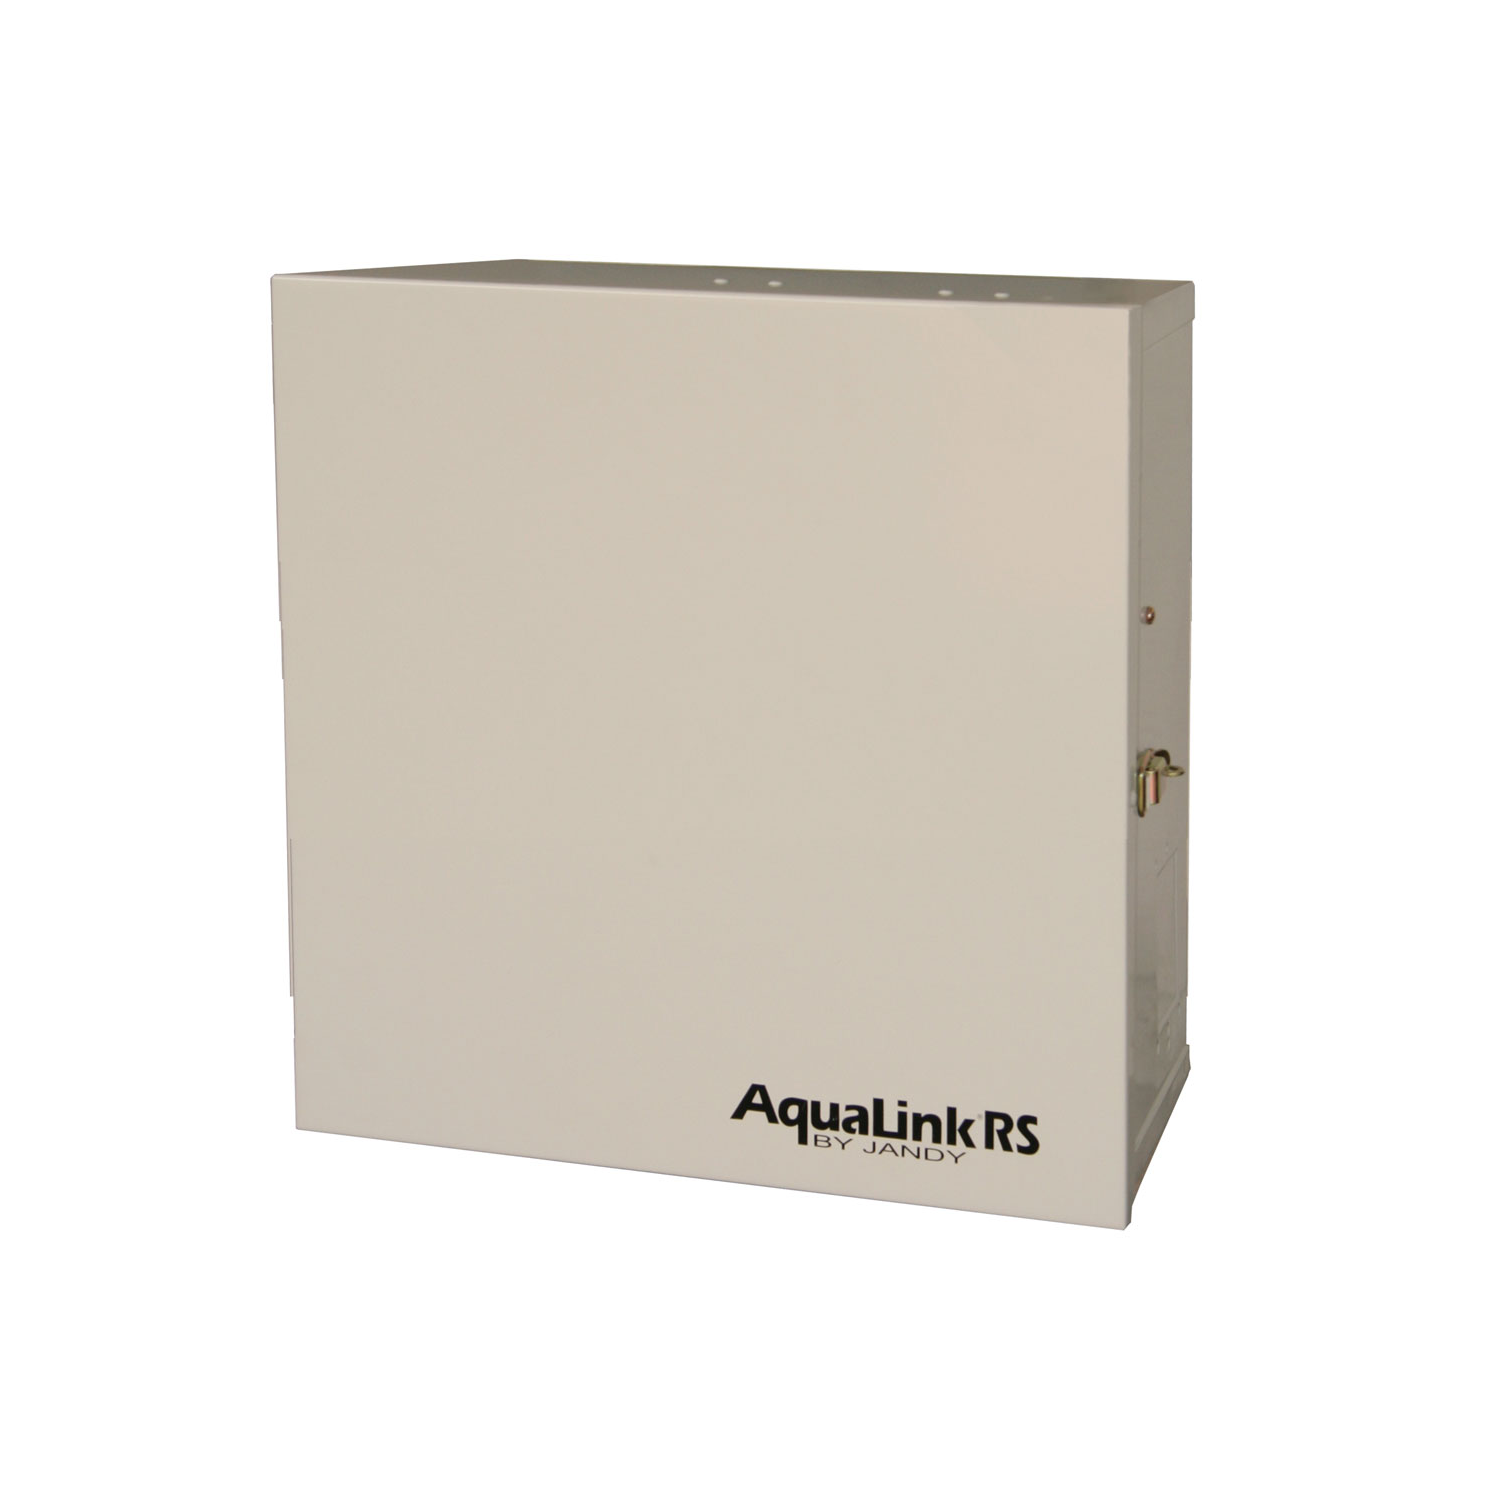 AquaLink Power Center for Swimming Pool Automation